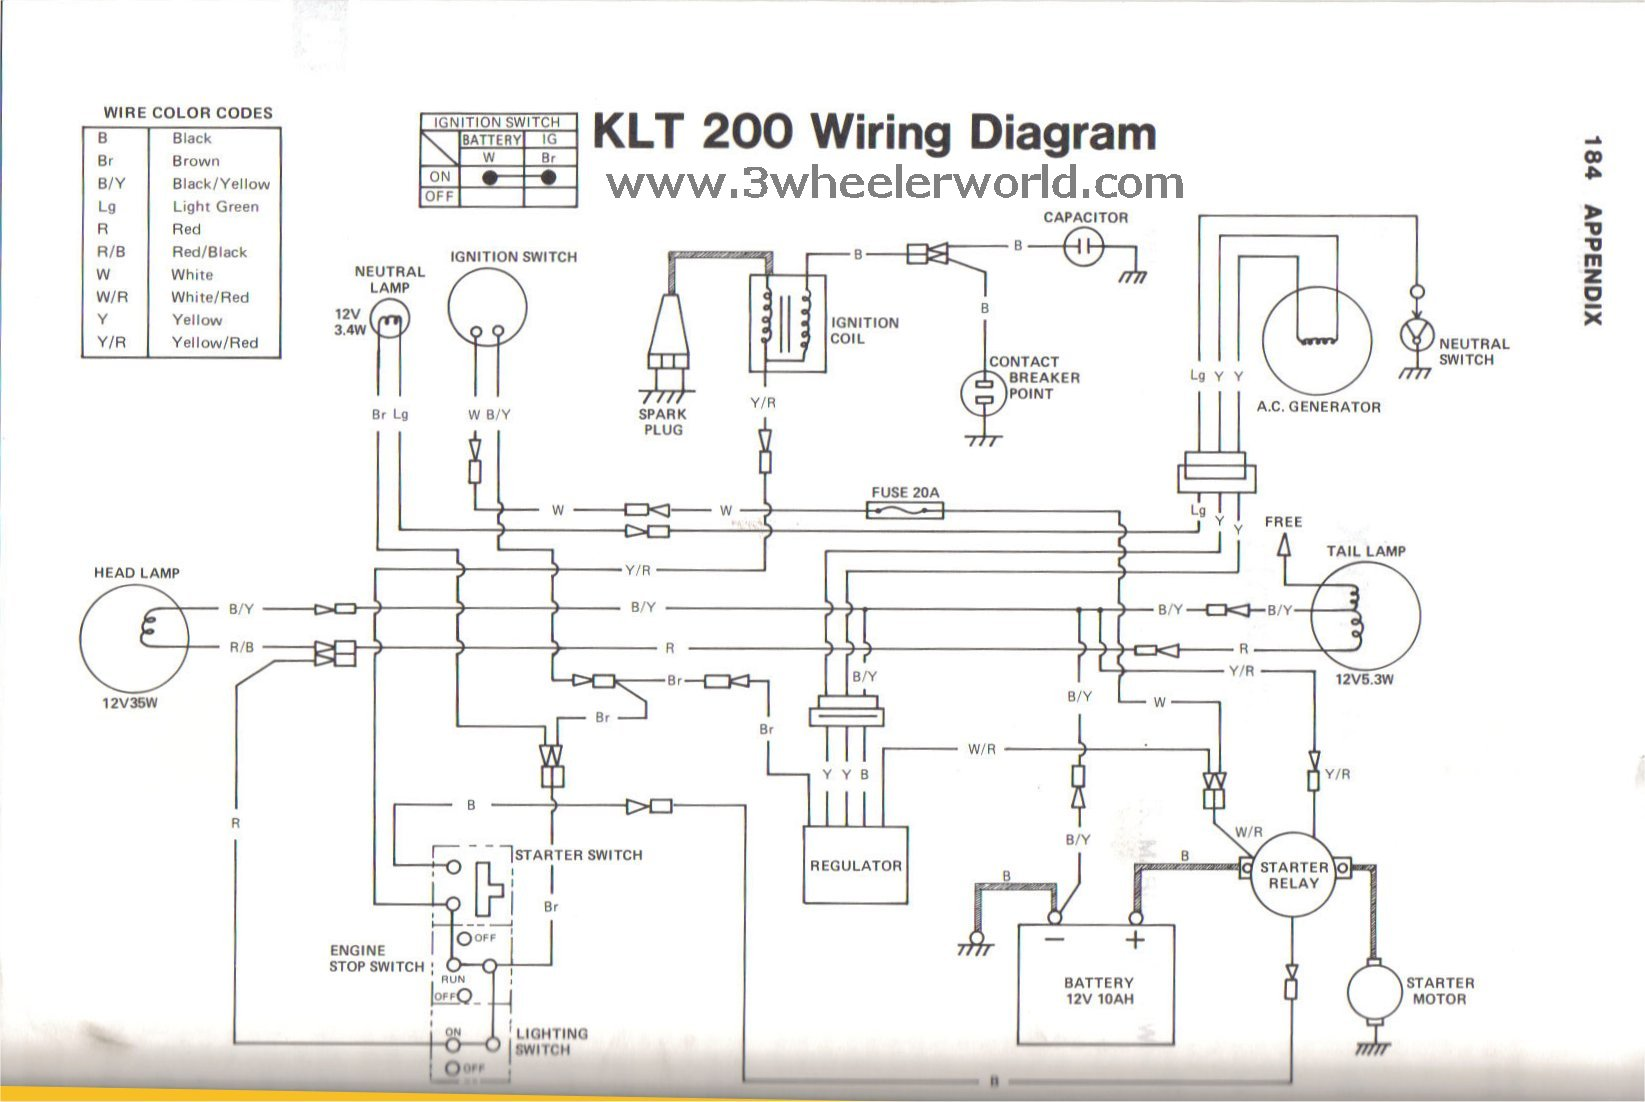 Watch in addition Atv Museum furthermore Sony Car Radio Wiring Diagram additionally 1999 Ninja 250 Wiring Diagram also Kawasaki Mule Wiring Diagram Besides 550 Parts. on kawasaki prairie 300 wiring diagram